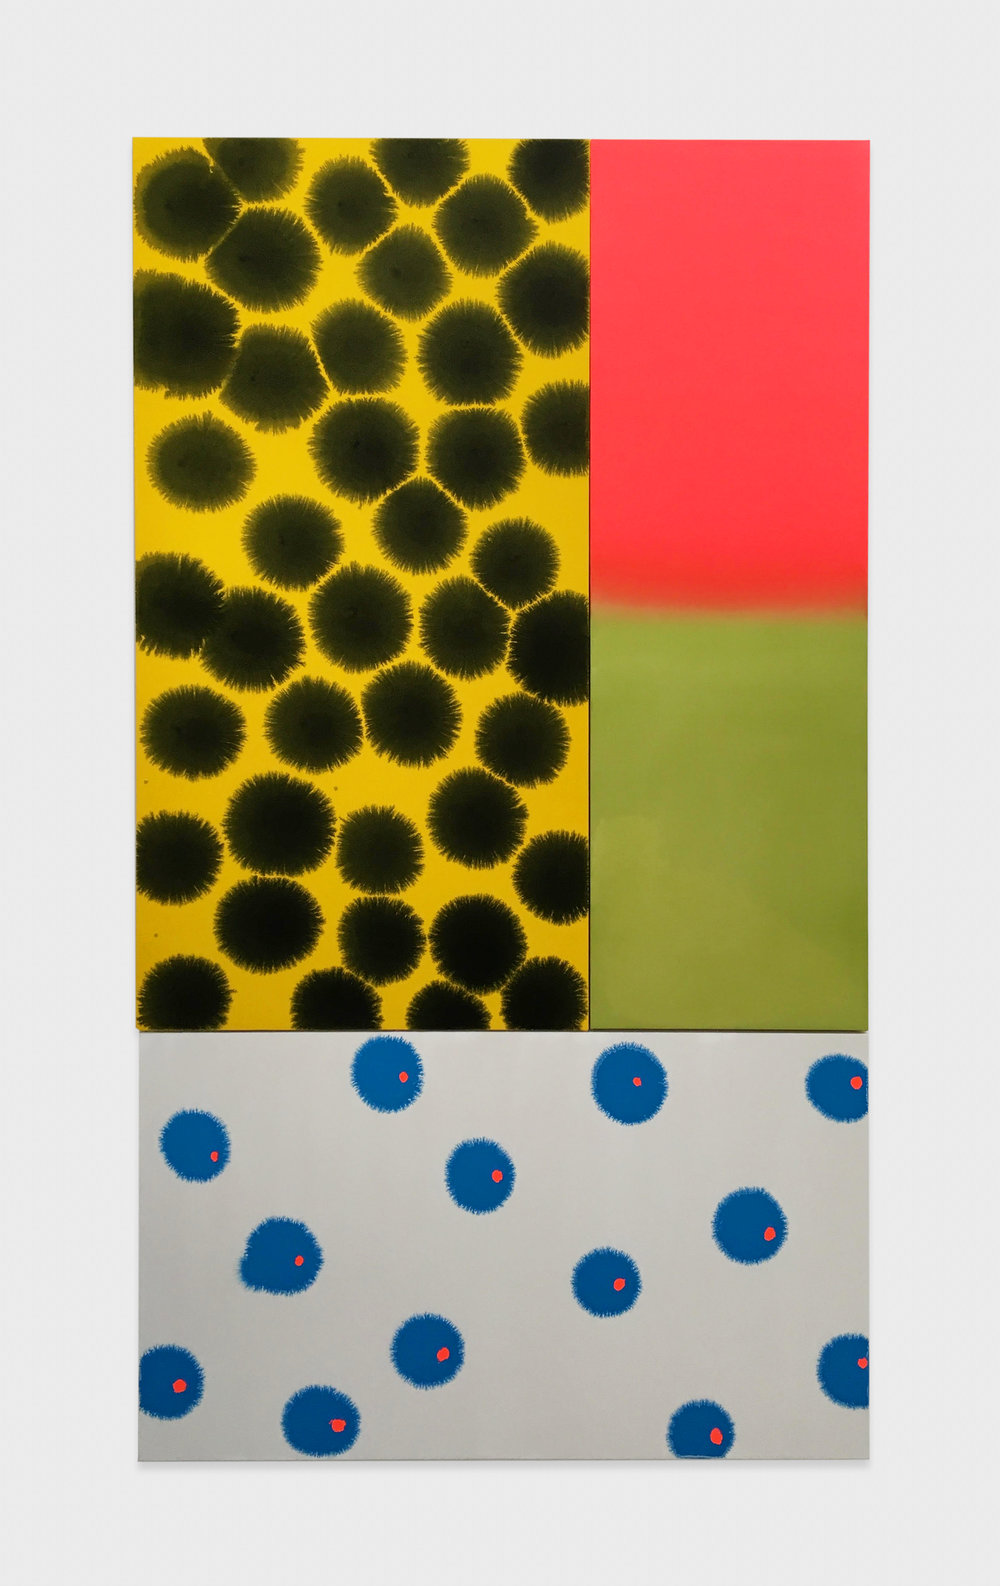 Paul Cowan  Not Yet Titled  2016 Acrylic and day-glo on canvas 74h x 42w in PC136